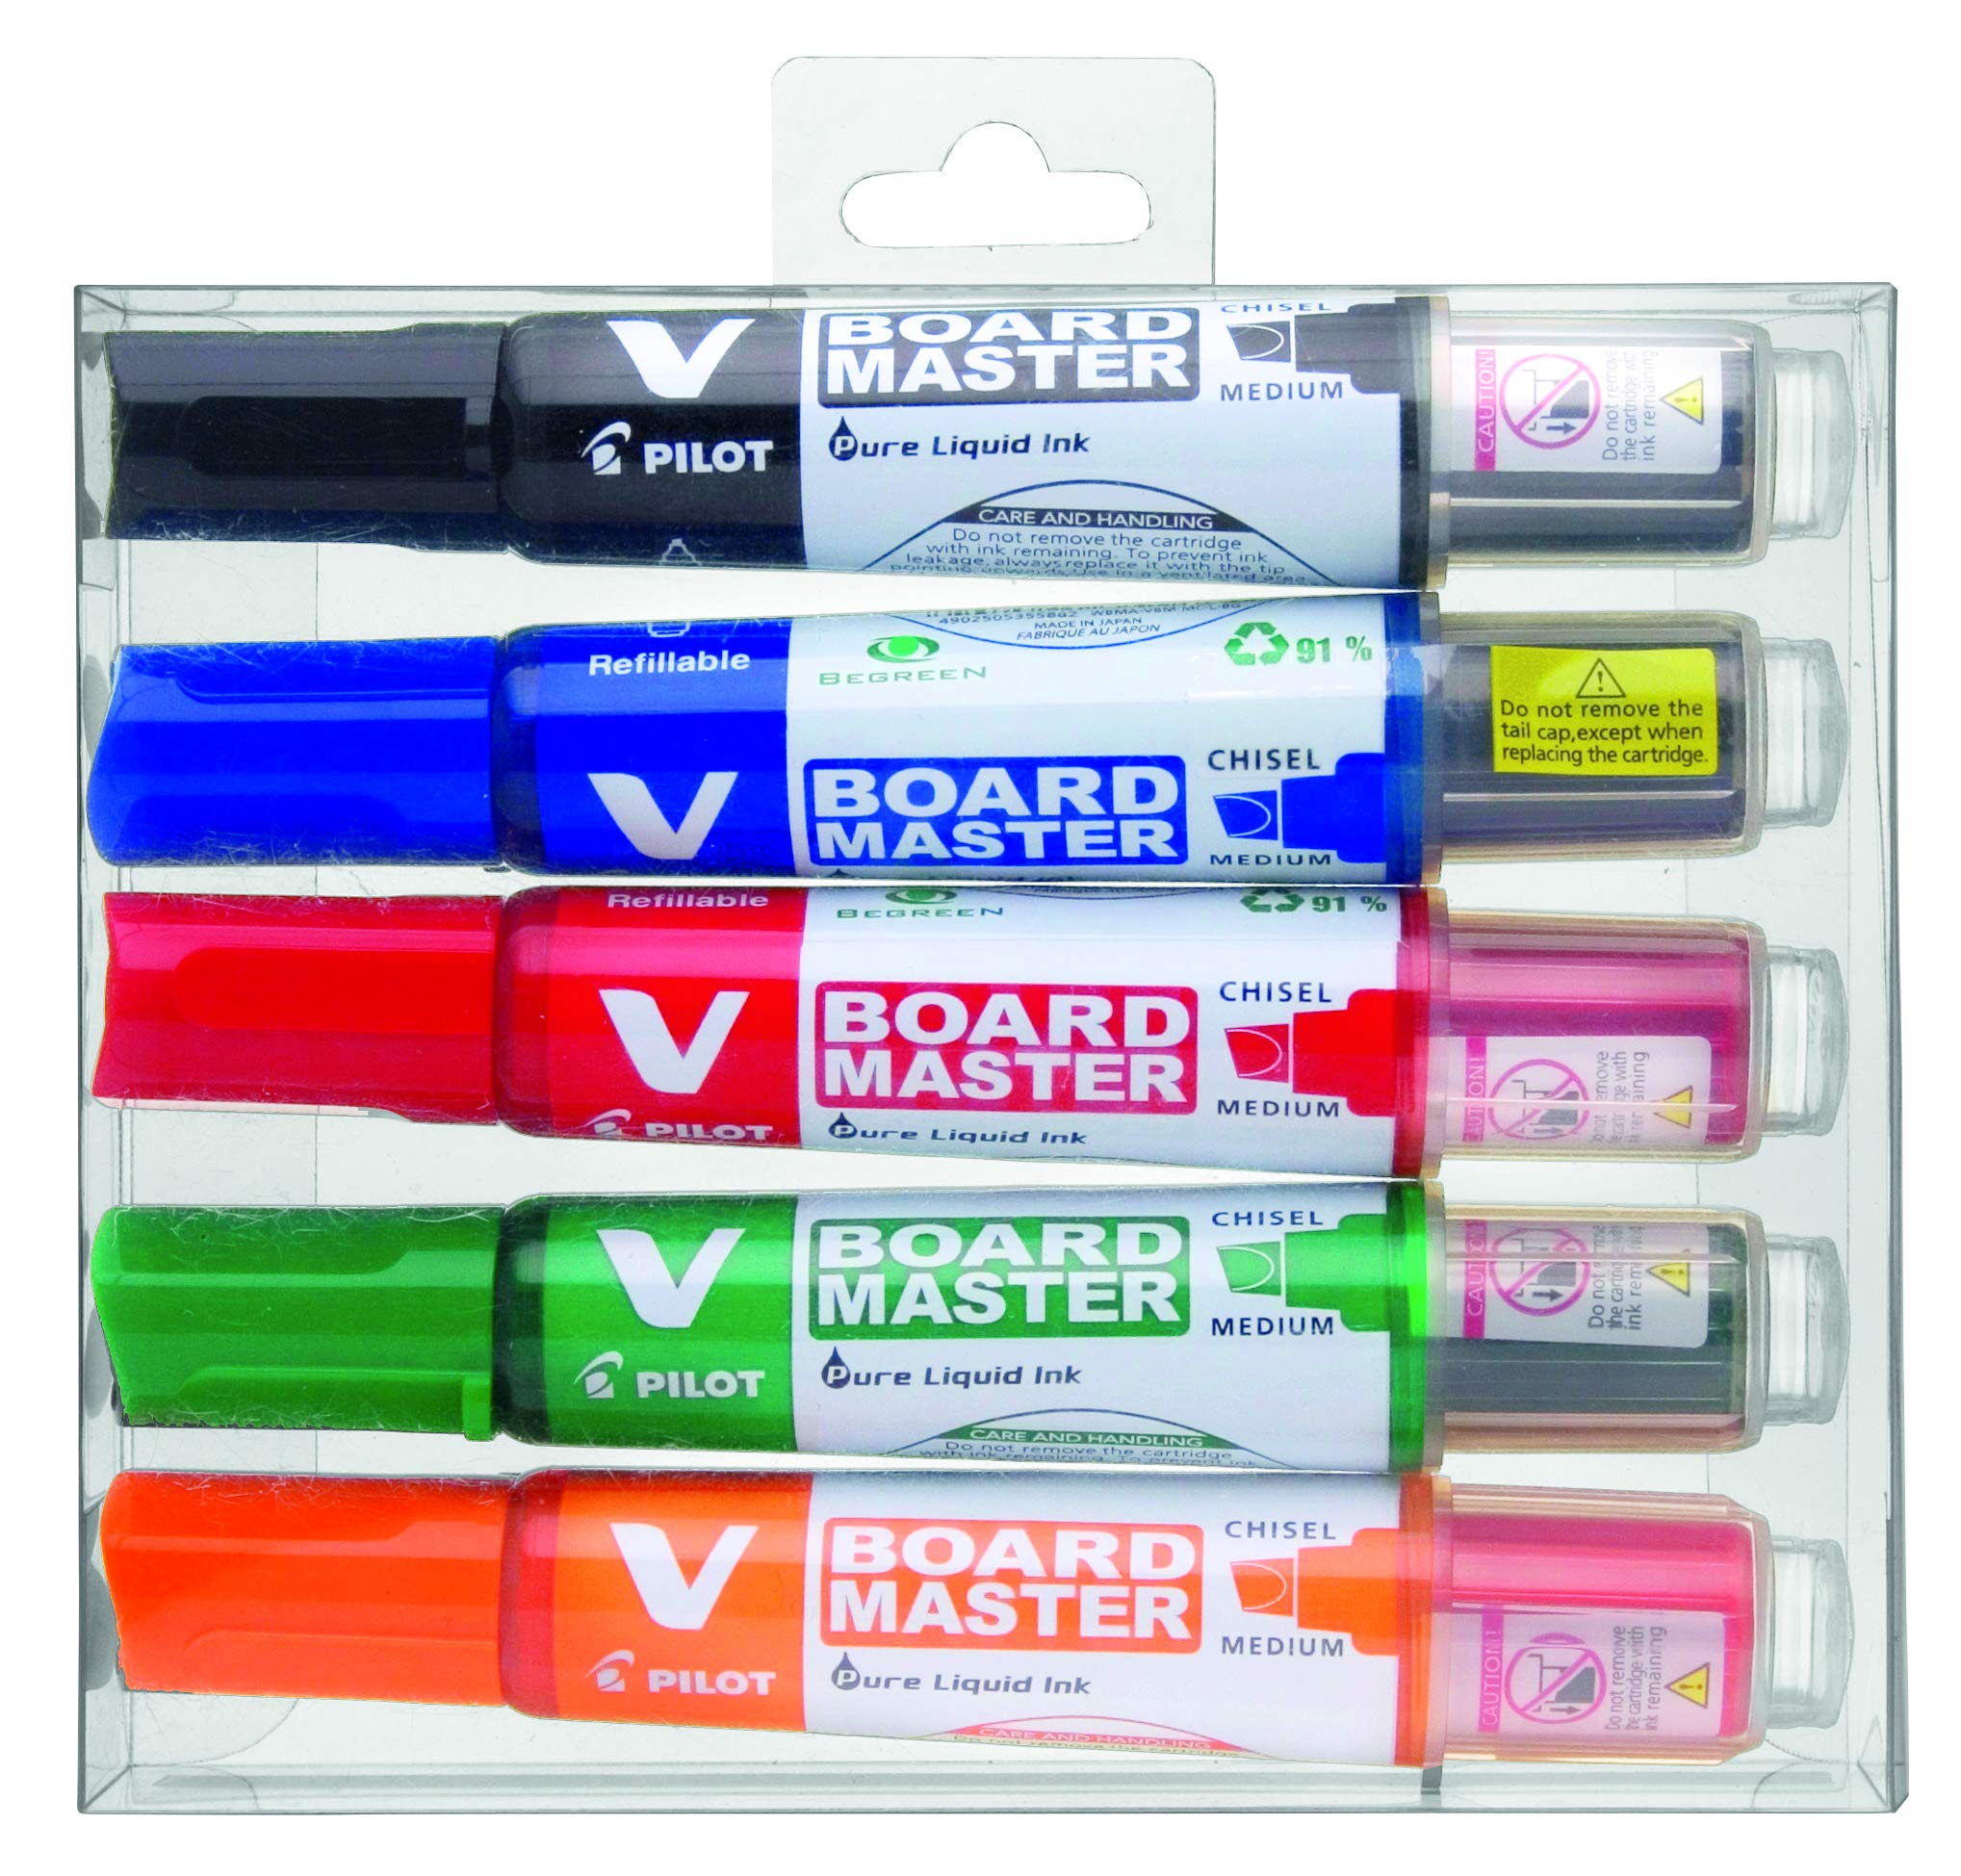 Pilot Begreen Recycled V Board Master Whiteboard Marker Chisel 2.2-5.2 mm Tip - Black/Red/Blue/Green/Orange, Wallet of 5